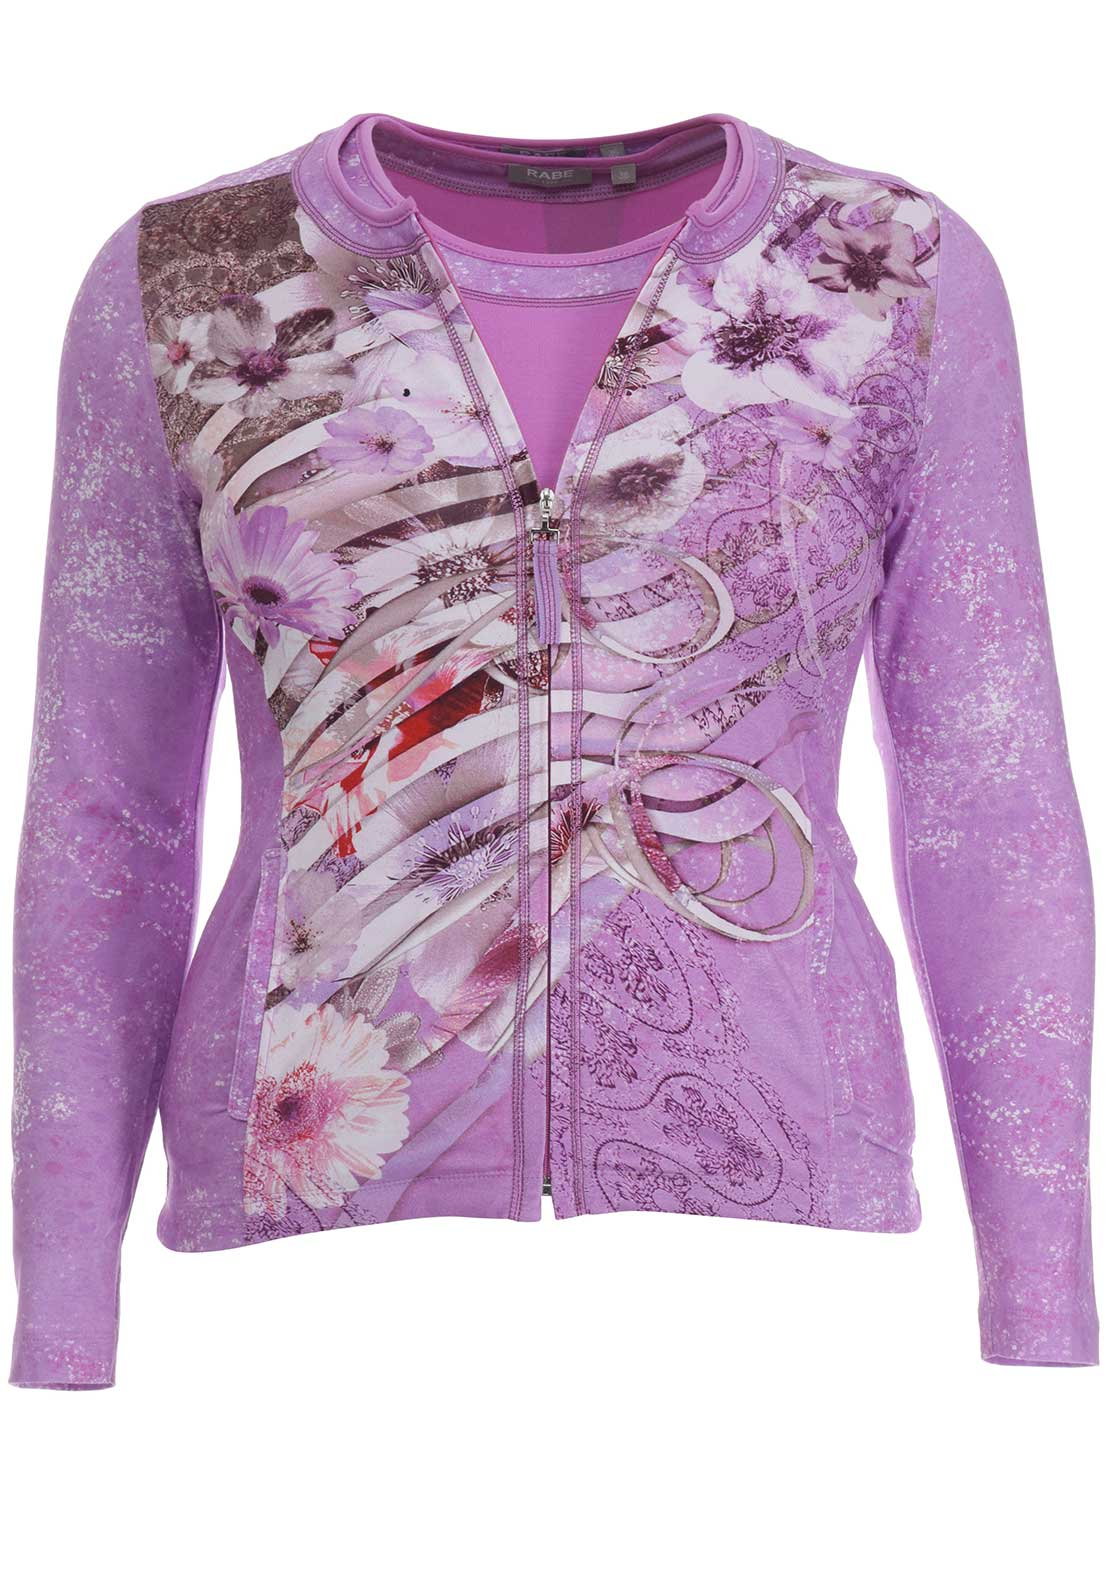 Rabe Floral Print Jersey Twinset, Purple